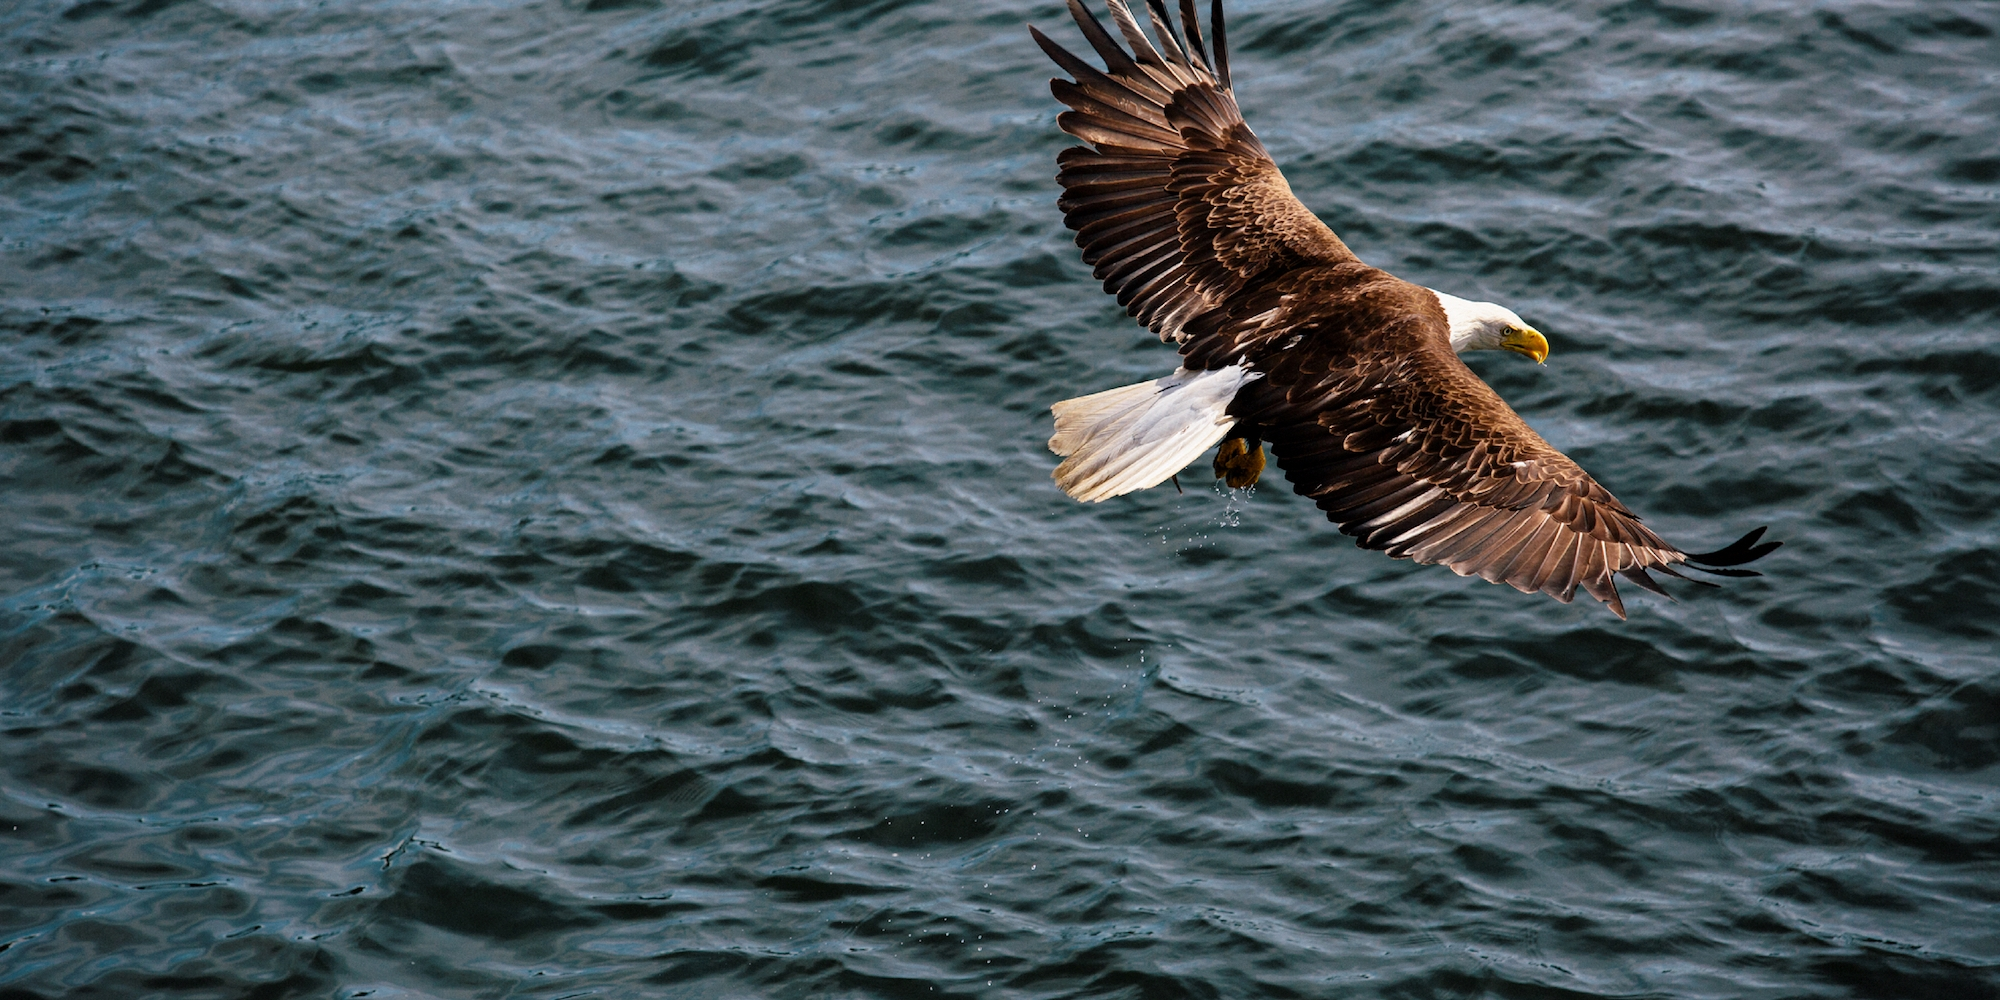 An eagle flying over the water